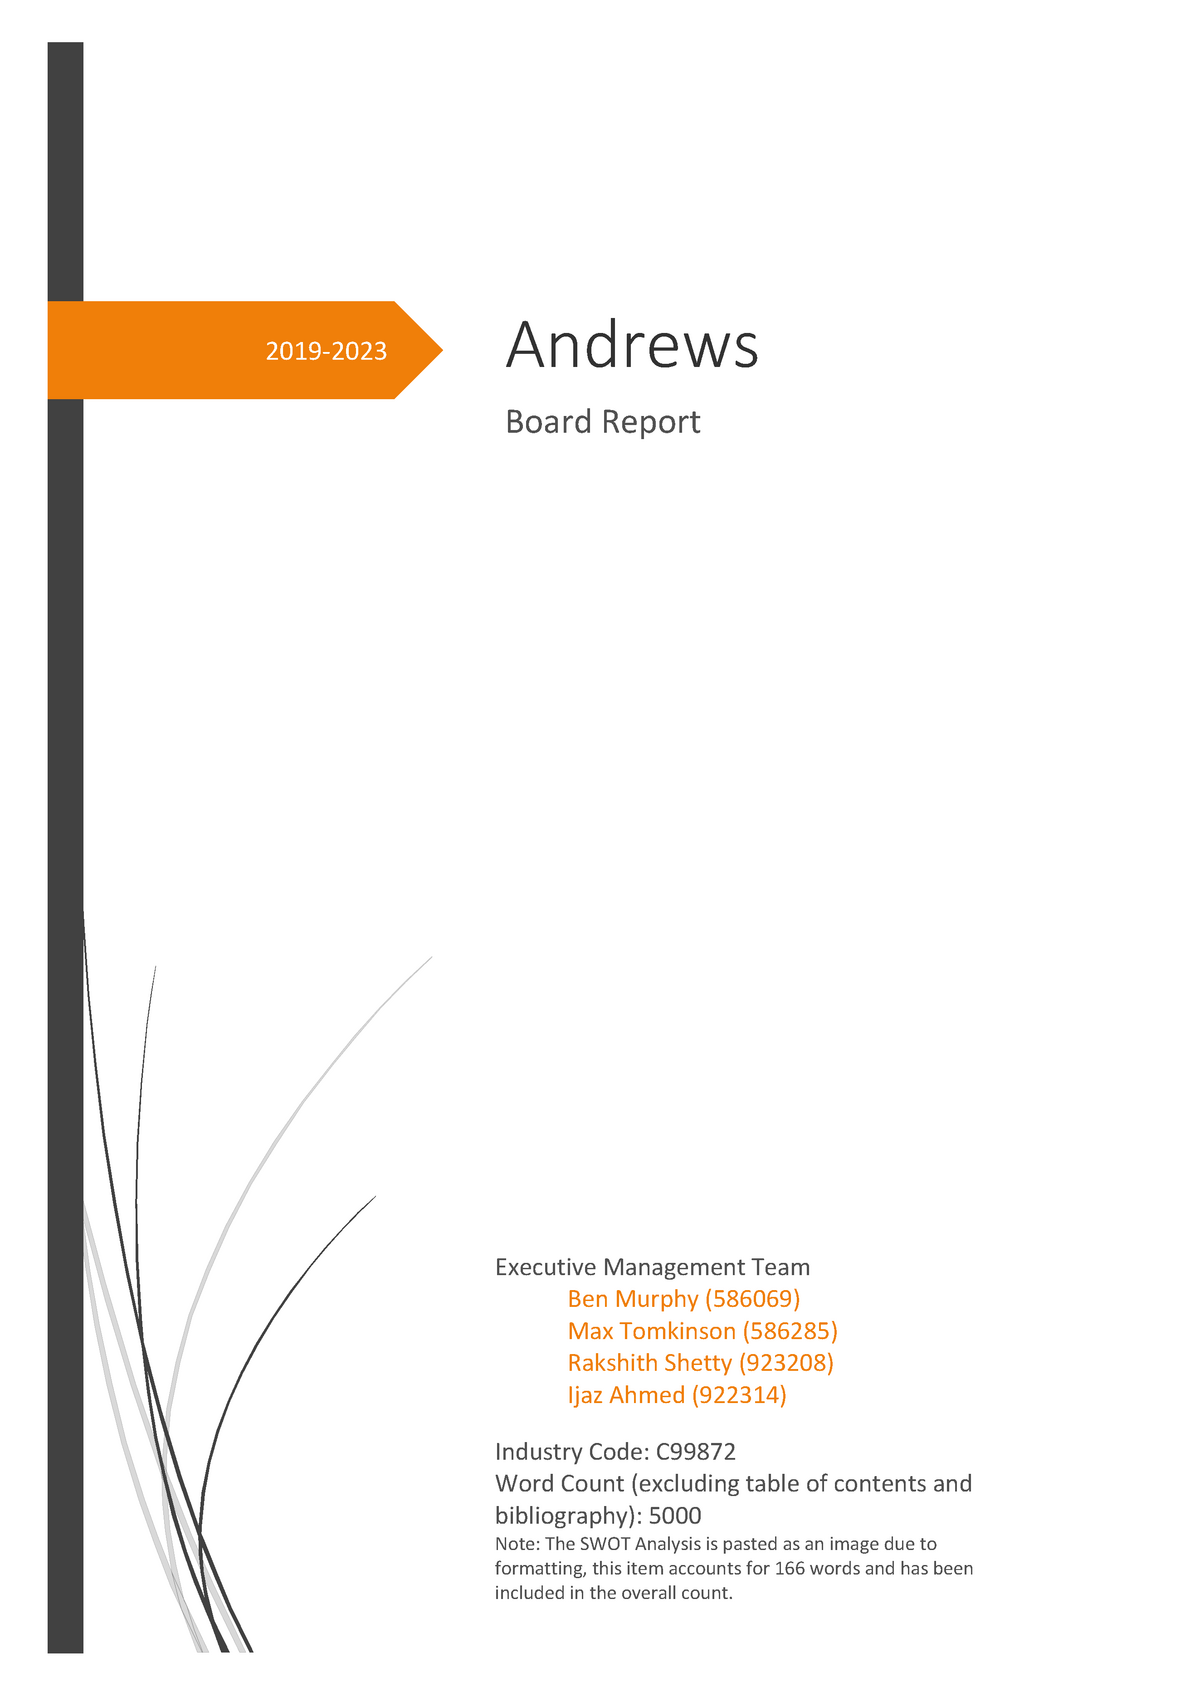 Board Report - 72 Andrews - MGMT90146 Strategic Management